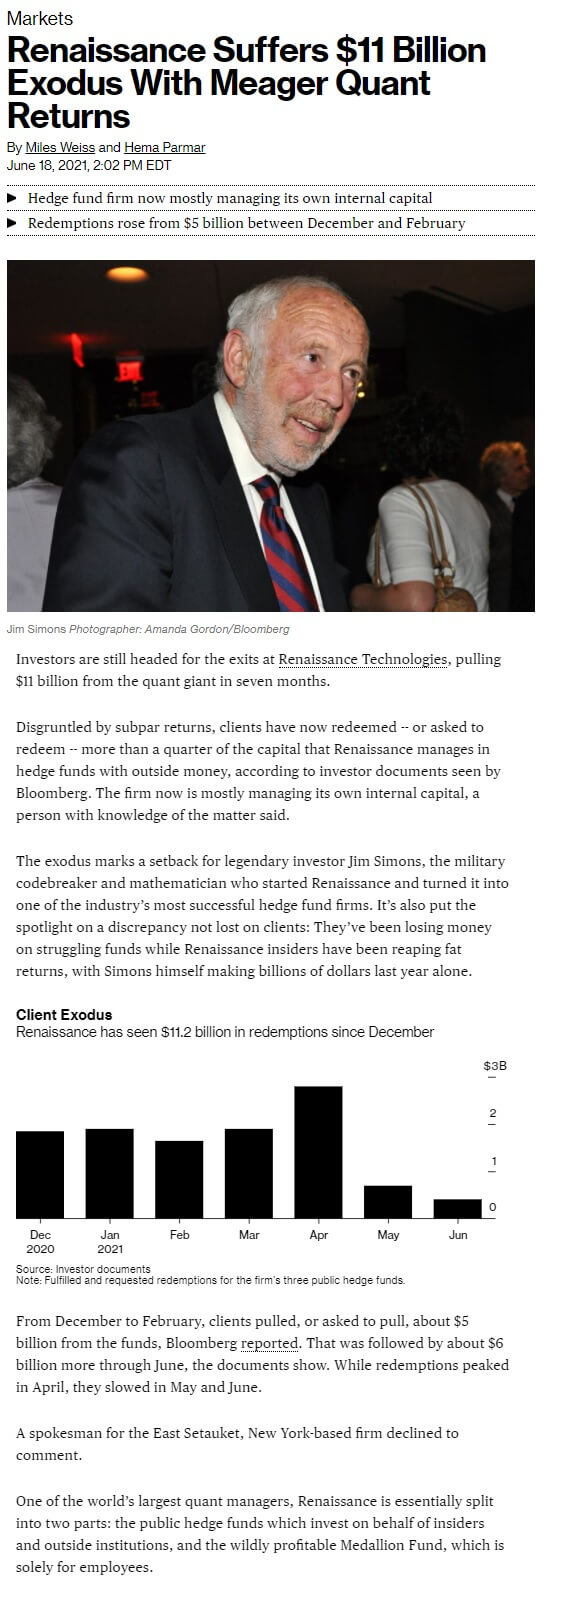 Bloomberg - Renaissance Suffers $11 Billion Exodus With Meager Quant Returns